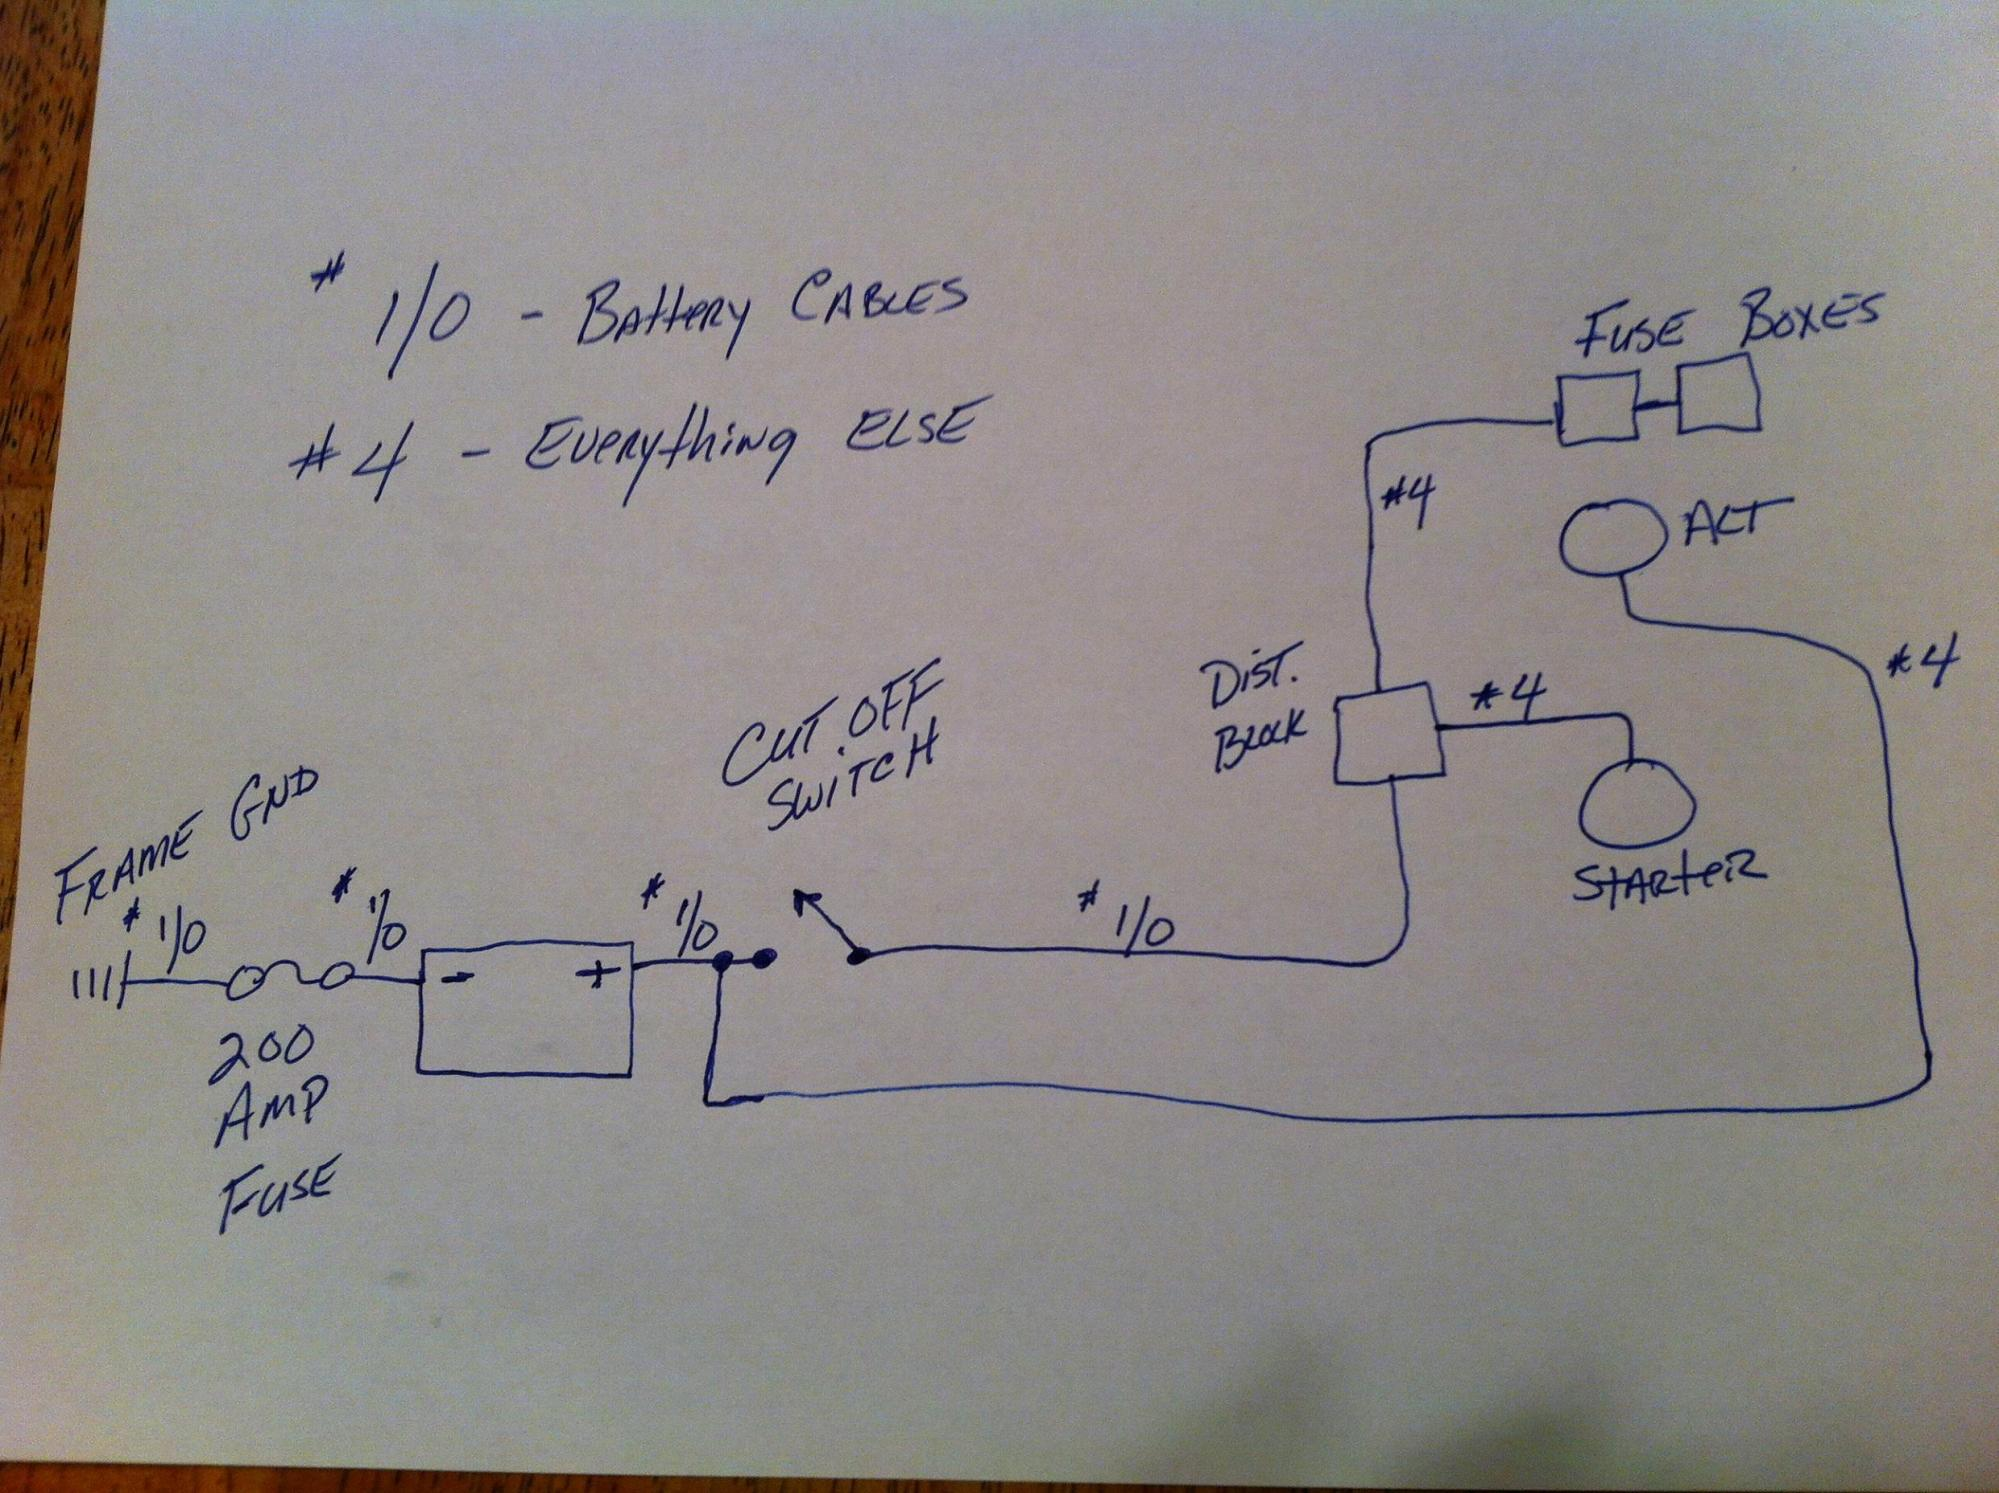 hight resolution of here s a diagram for battery relocation 036 jpg